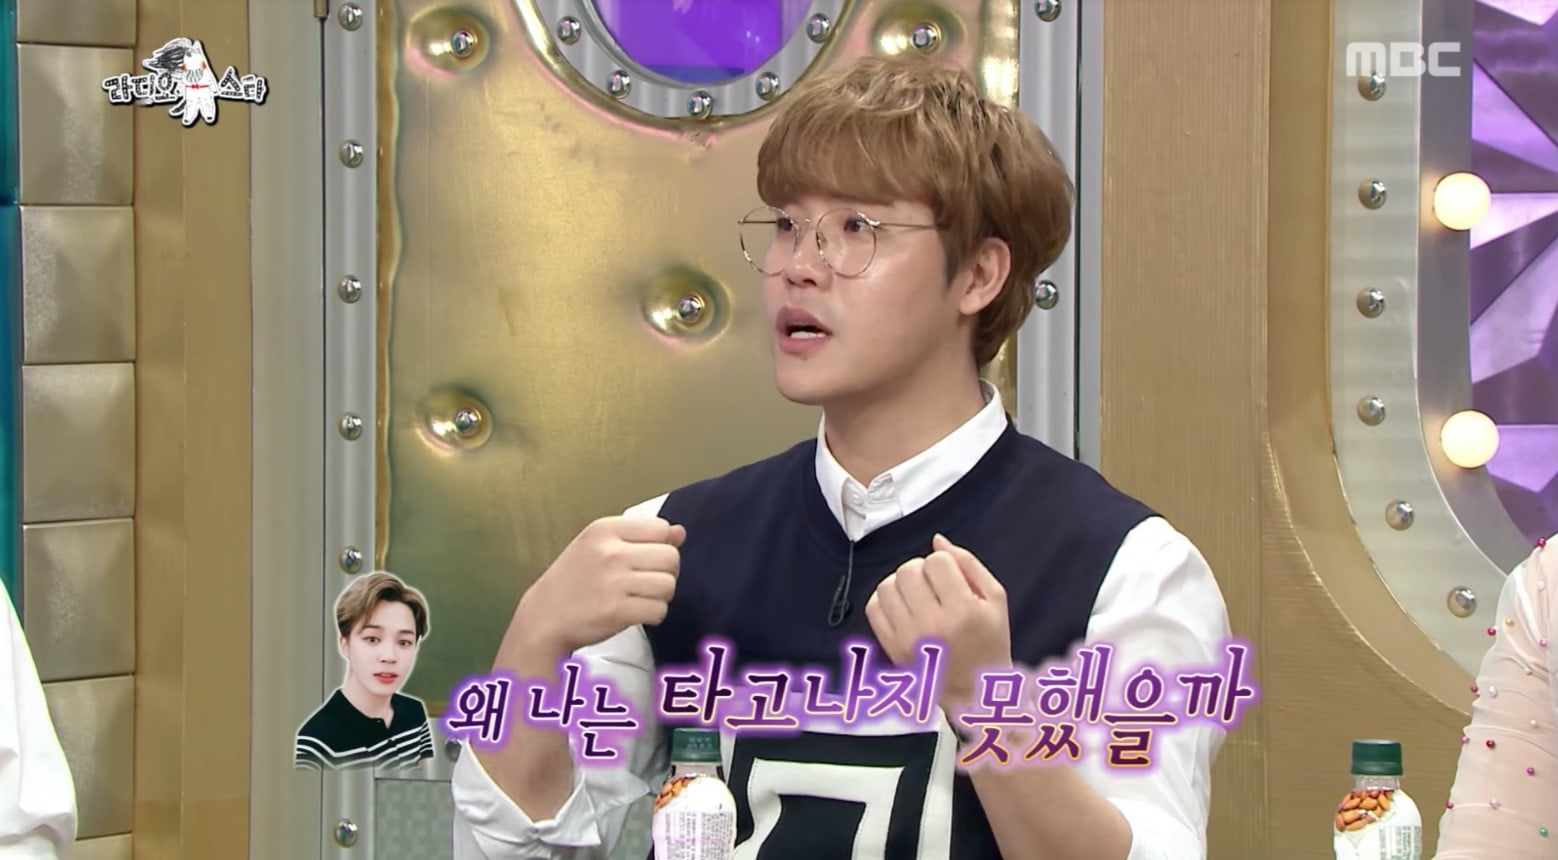 Lee Hyun On How His Relationships With BTS's Jin, Jimin, And